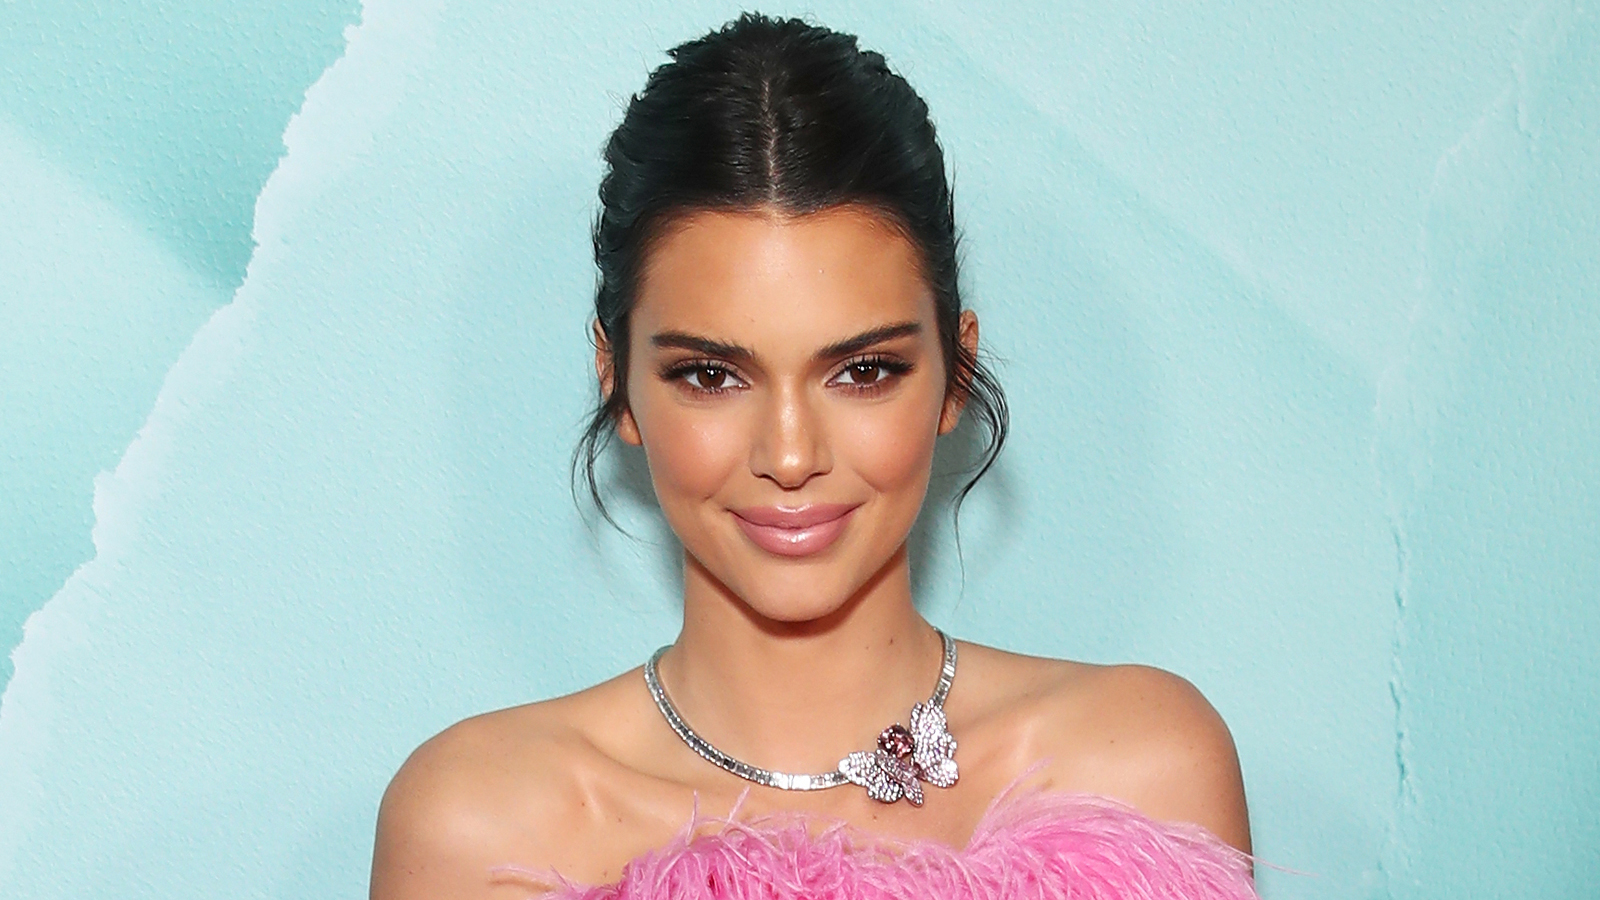 Kendall Jenner Quotes